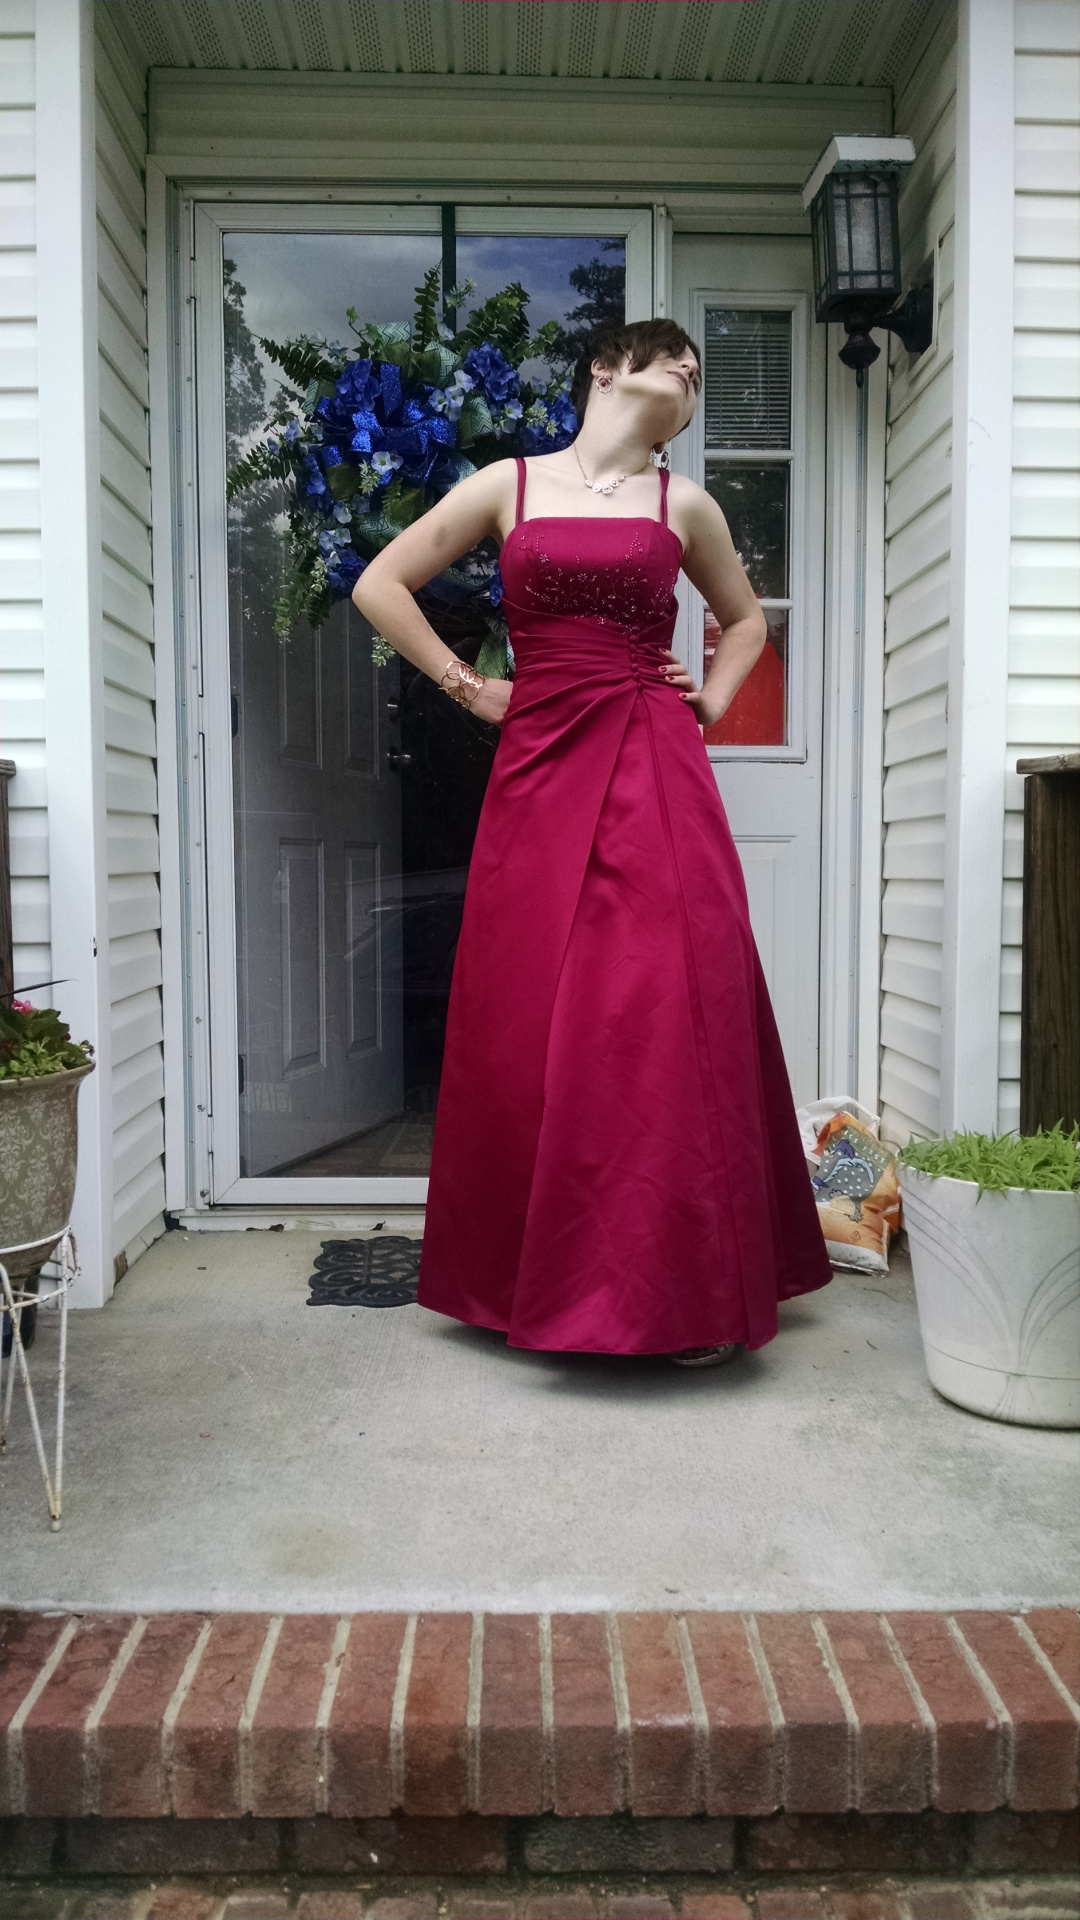 Me Before the Formal